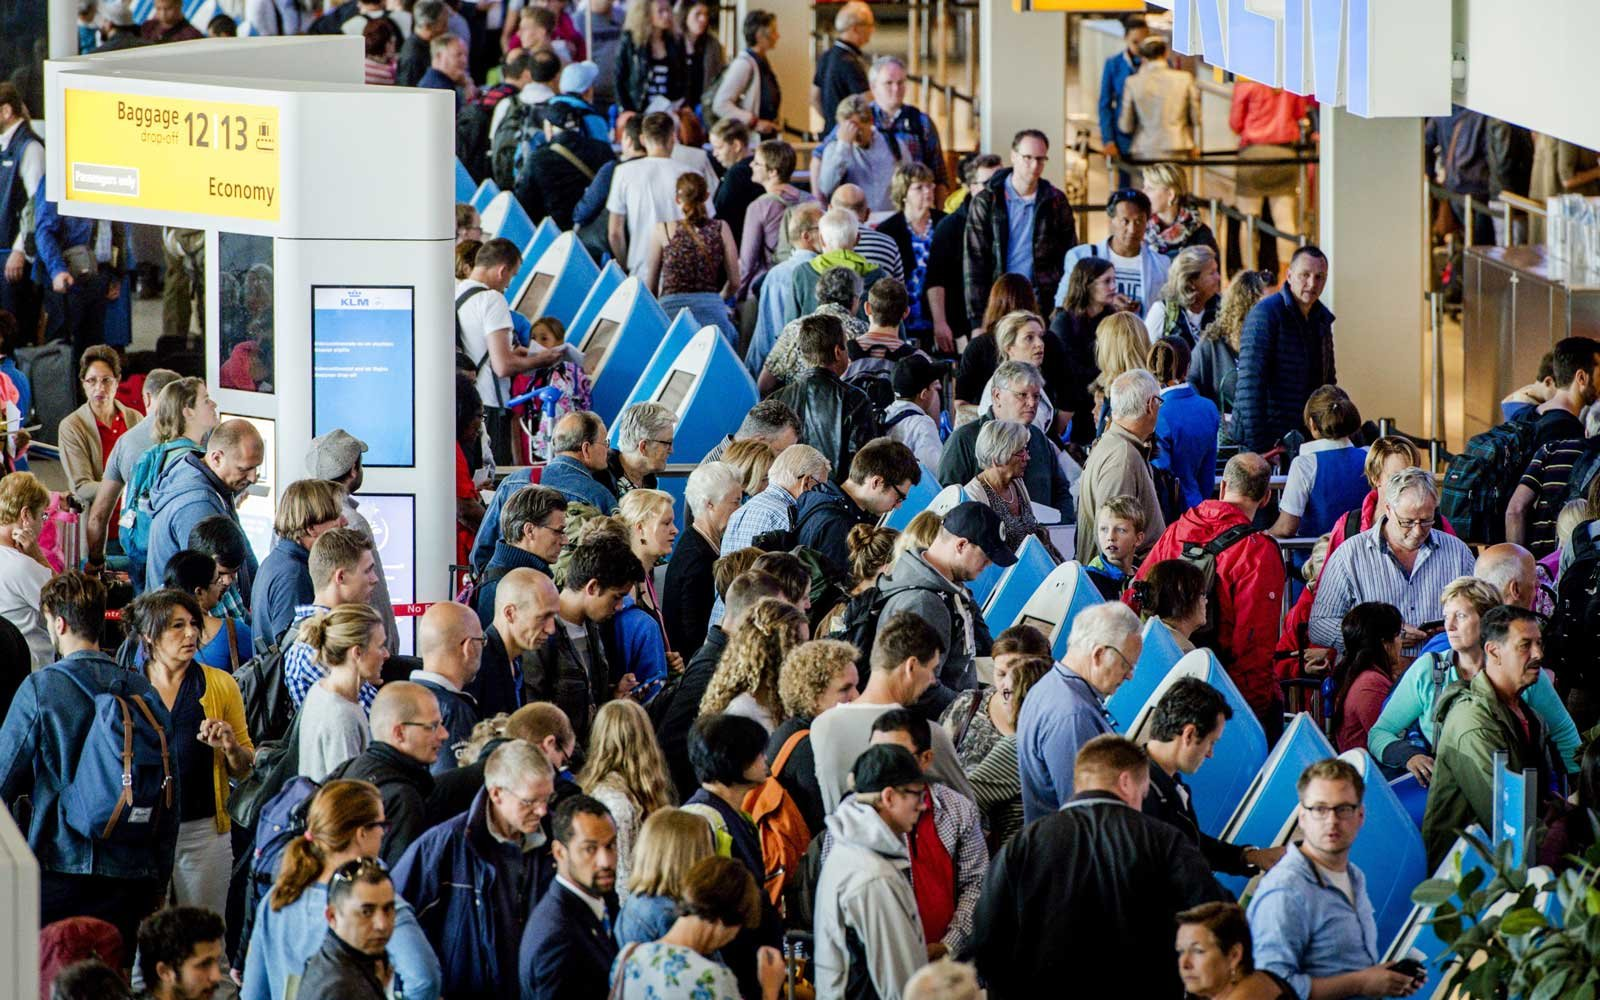 Travelers wait to check-in at Airport